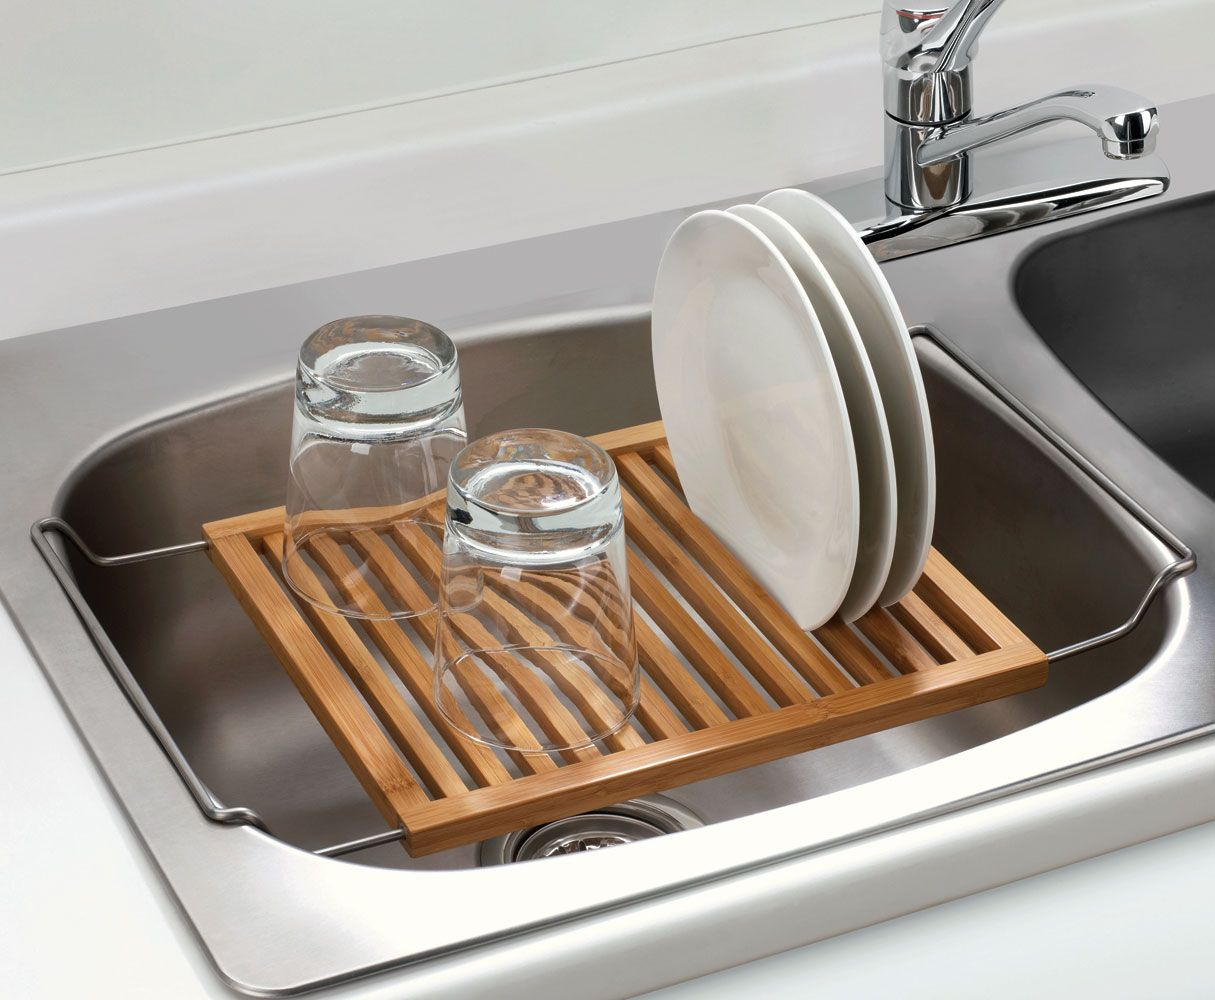 Over the sink dish drying rack in bamboo | Kitchen storage ...